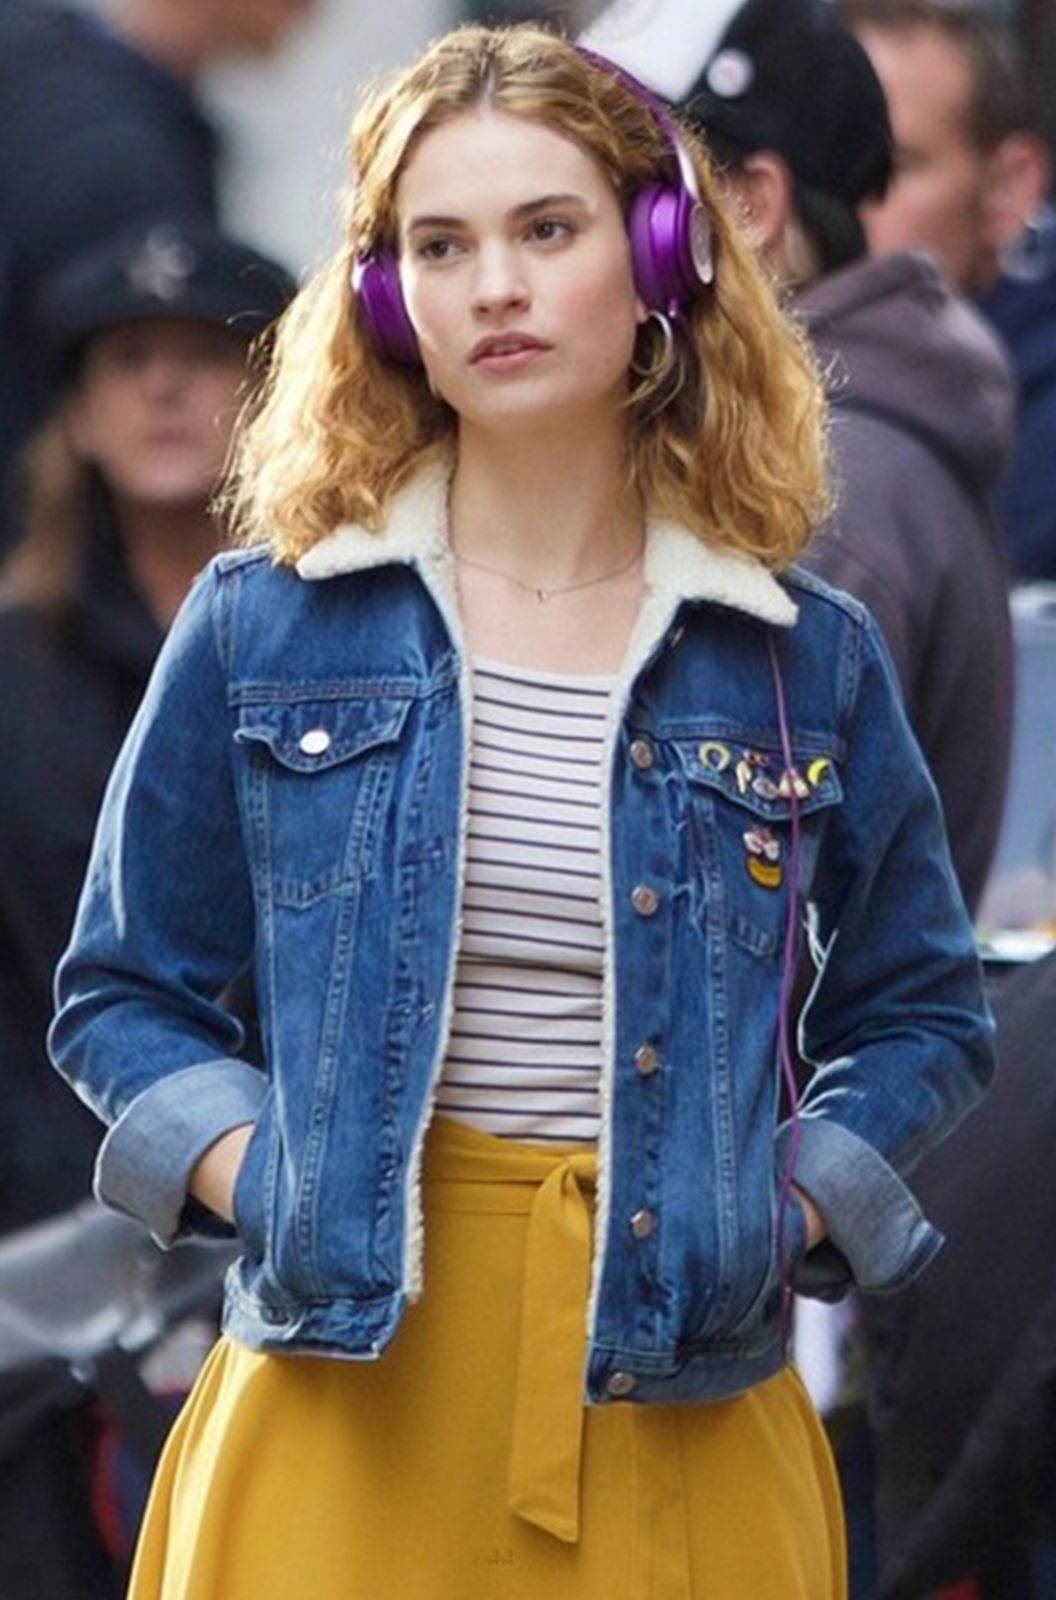 Most Famous Movie Baby Driver And The Beautiful Celebrity Lily James Denim Jacket Lilyjames Babydriver Fashion W Lily James Baby Driver Fashion Lily James